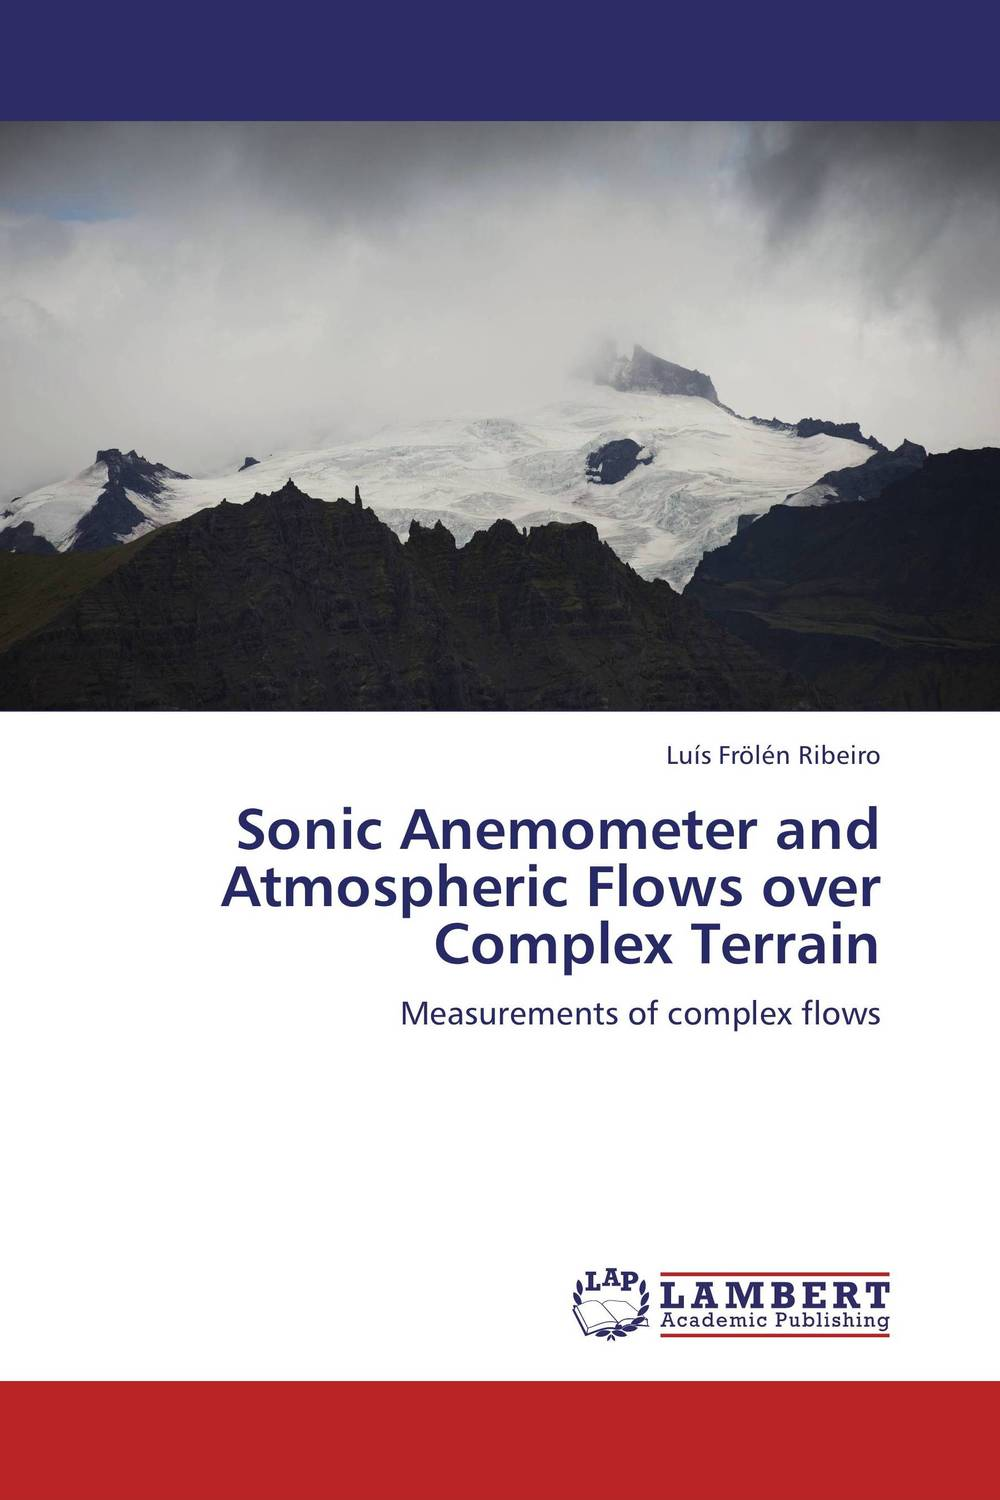 Sonic Anemometer and Atmospheric Flows over Complex Terrain handheld digital anemometer for wind speed measurement